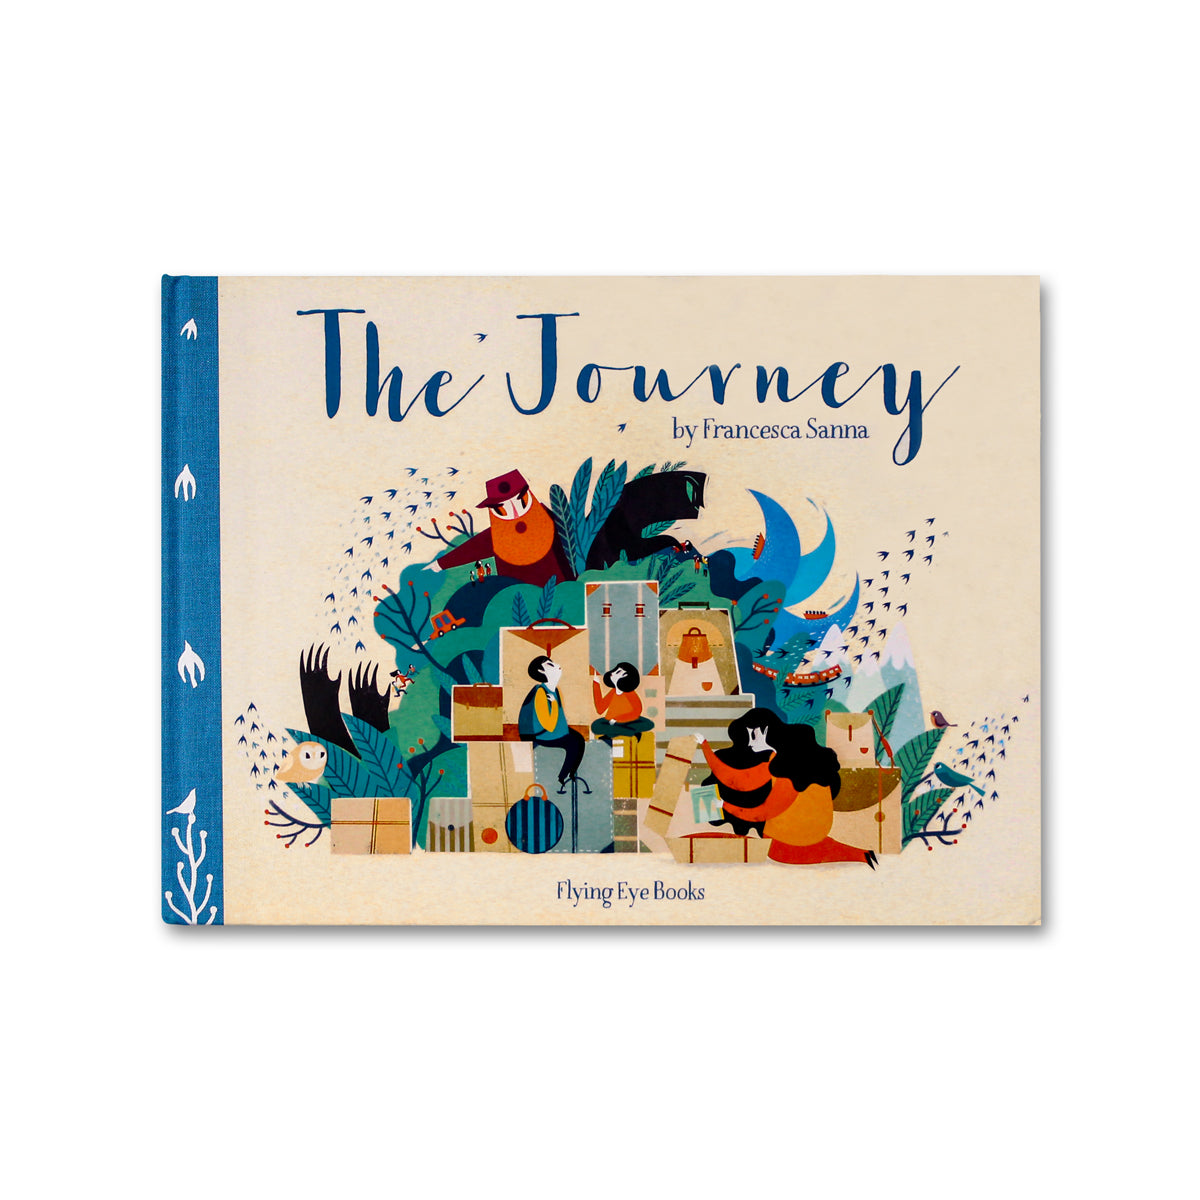 The Journey - 9781909263994 - Me Books Asia Store